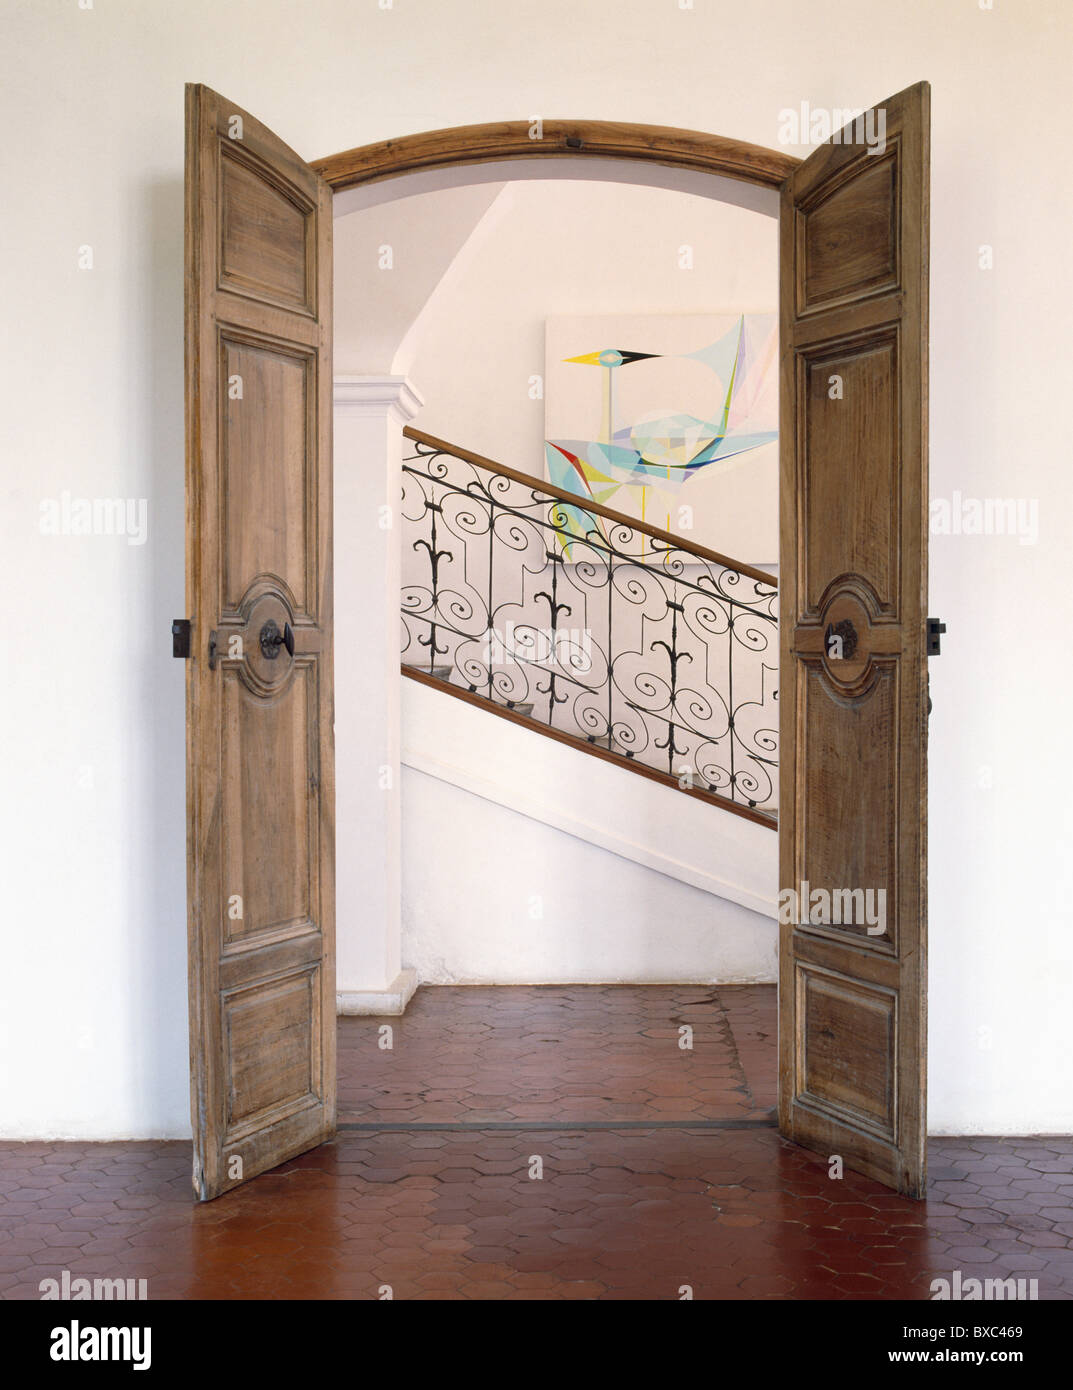 double door open. Old Carved Wood Double Doors Open In French Country Hall With View Of Wrought Iron Banisters On Staircase Door